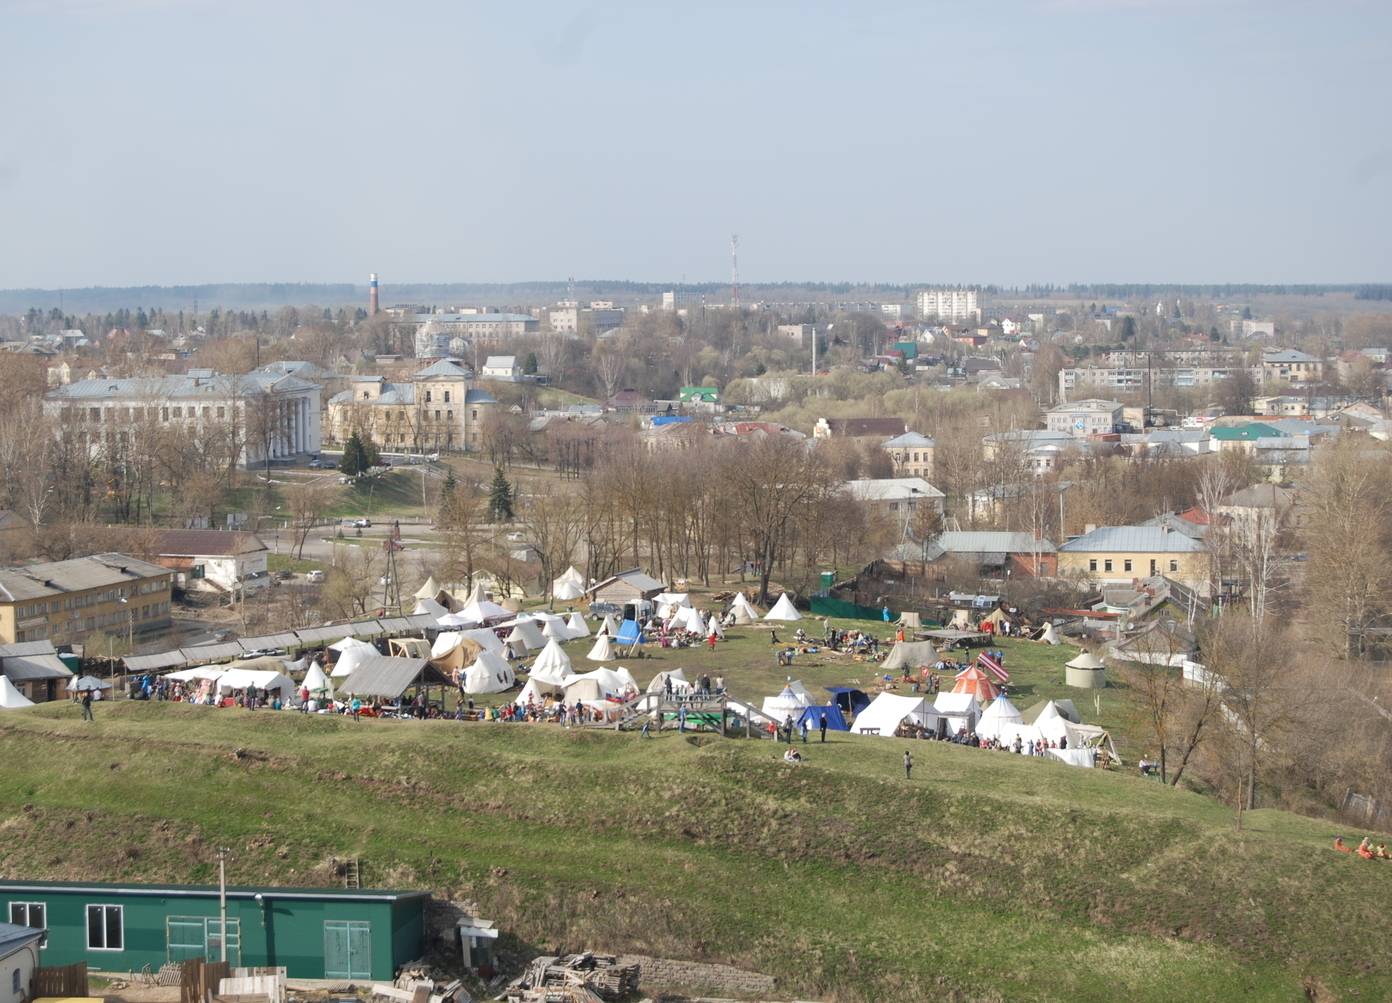 Medieval Festival in Torzhok, small town in Russia